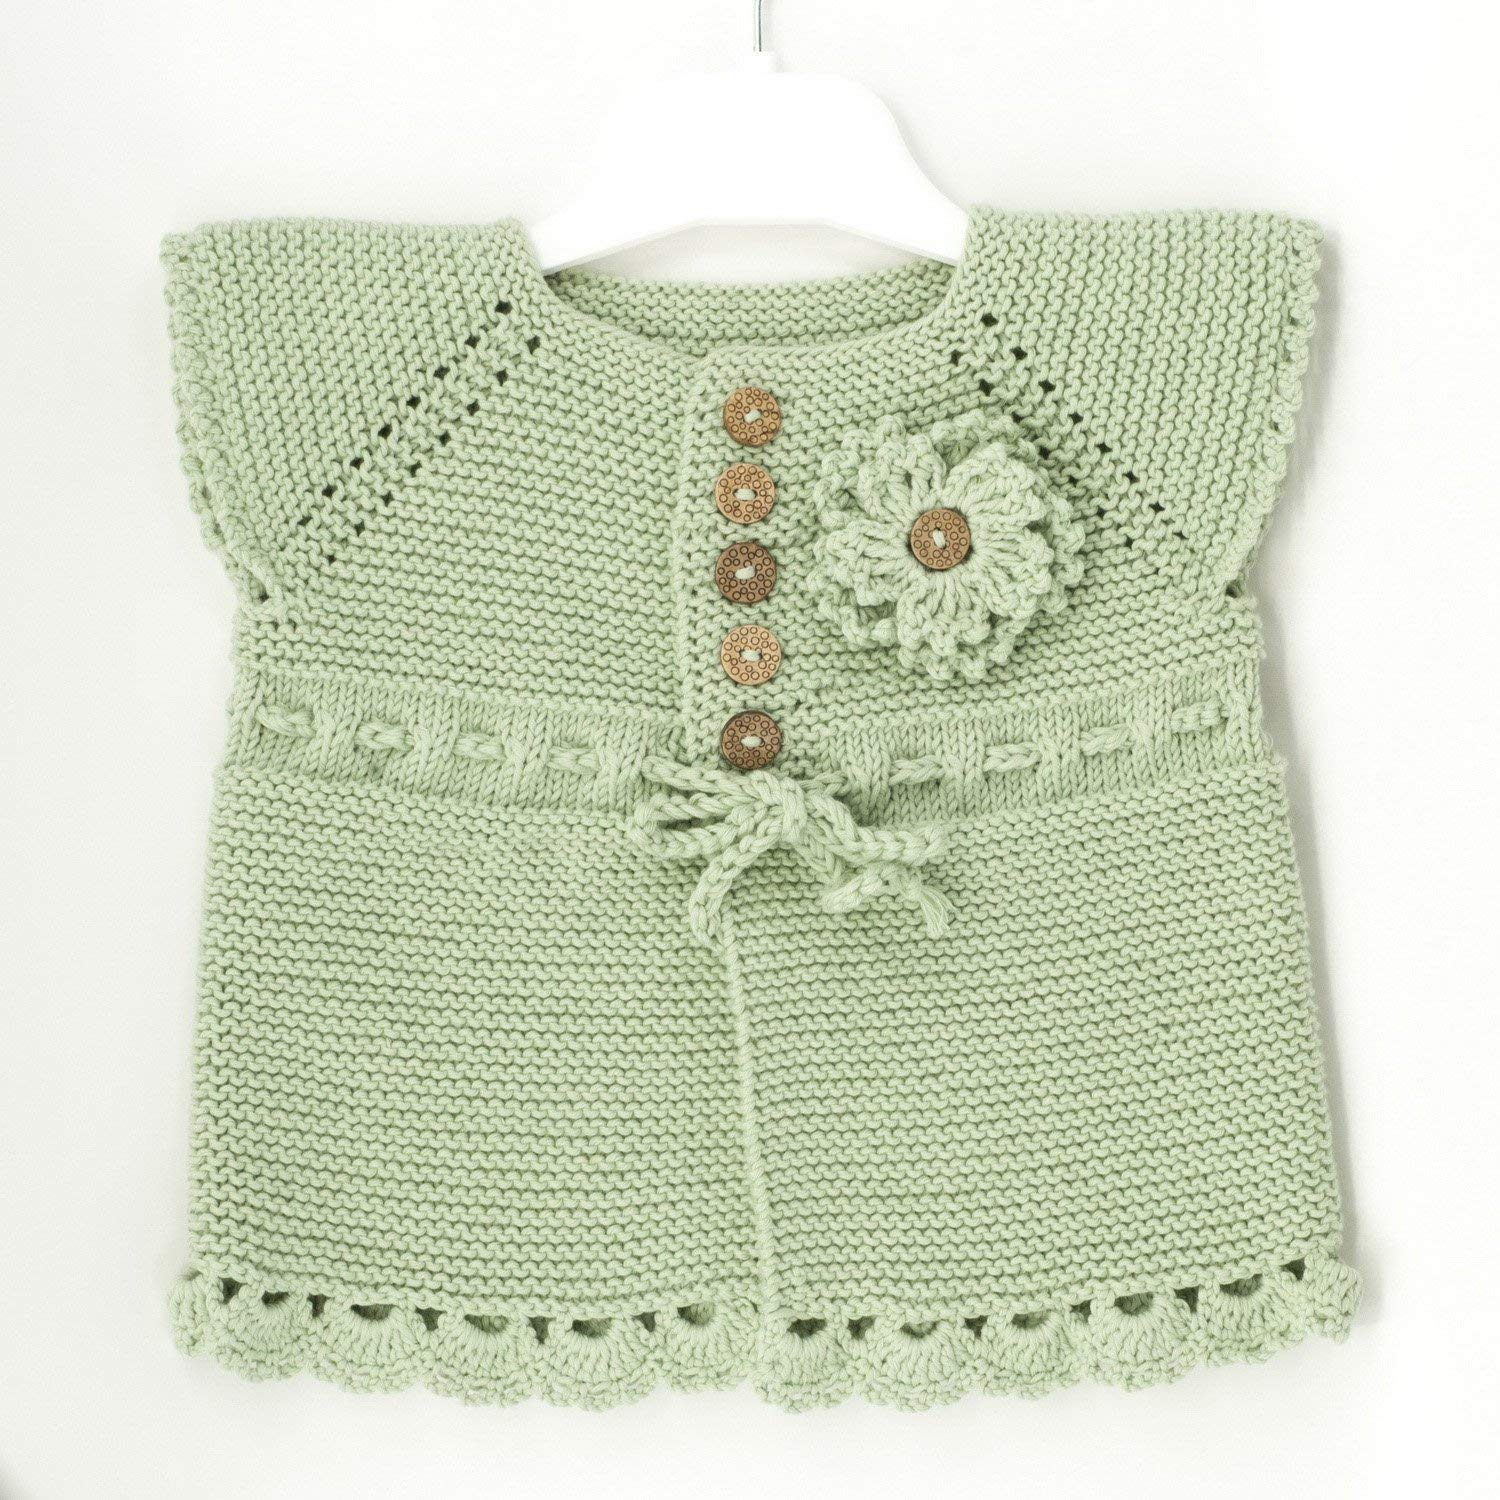 Hand Knitting Baby Girl Sweater Set for Summer - 3 Pieces - 100% Organic Cotton